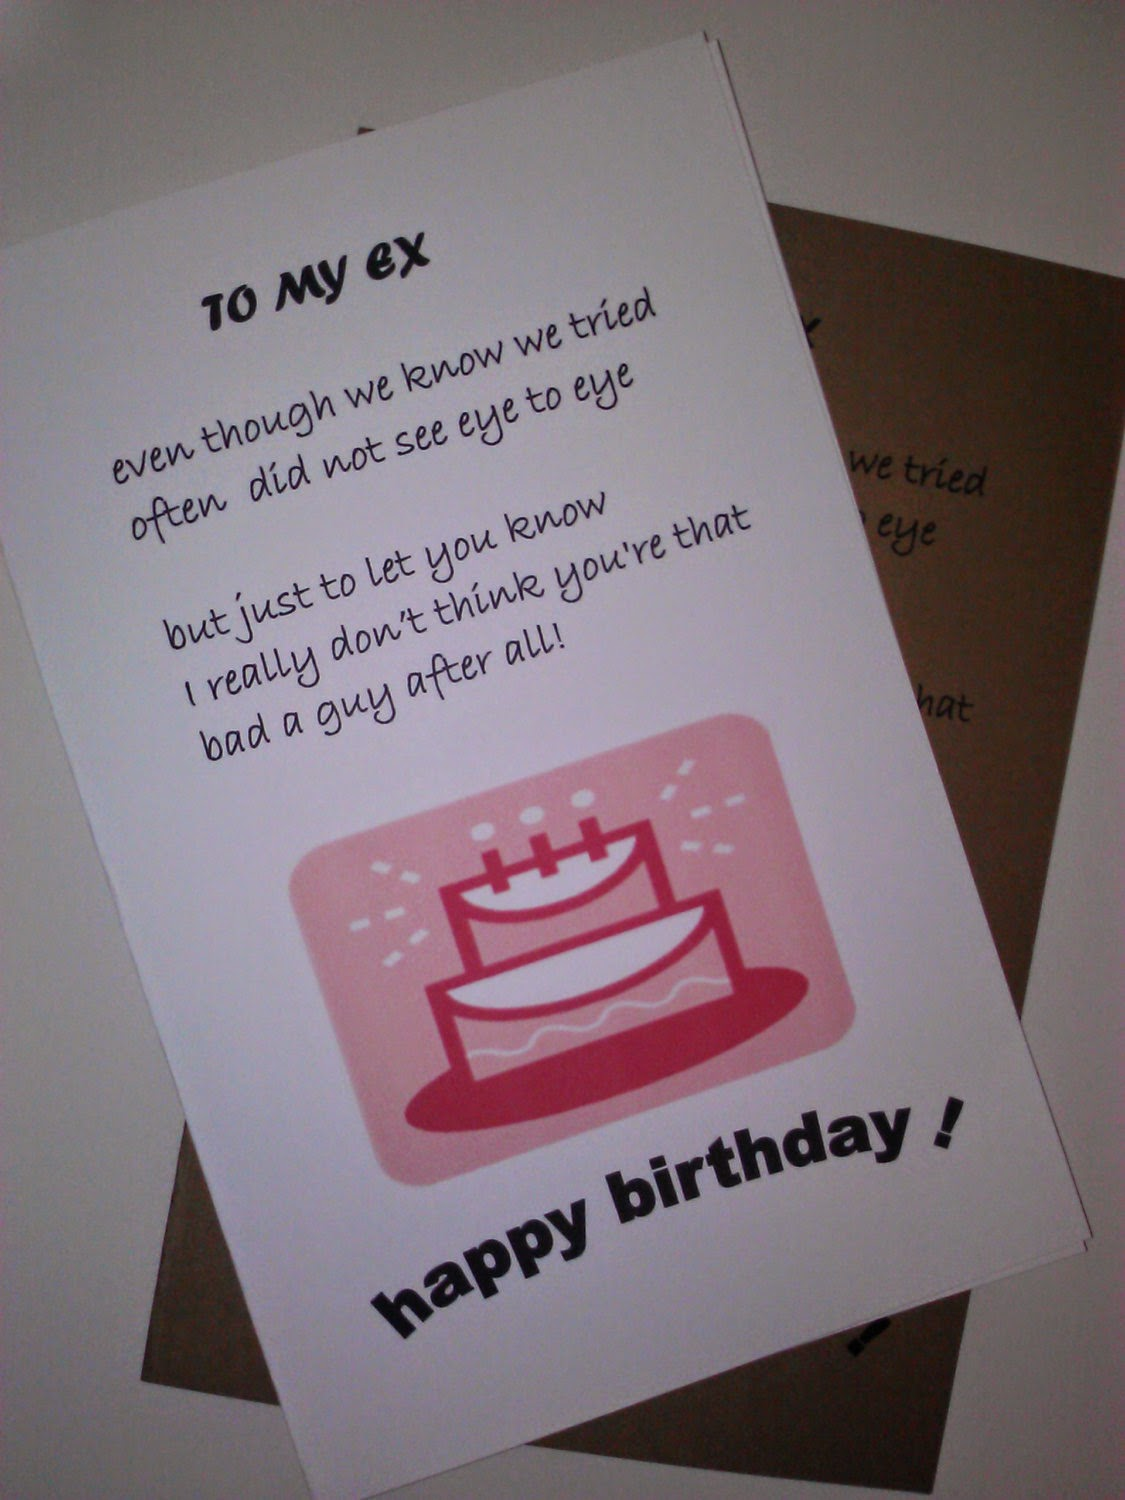 To My Ex Even Though We Know We Tried Often Did Not See Eye To Eye Happy Birthday